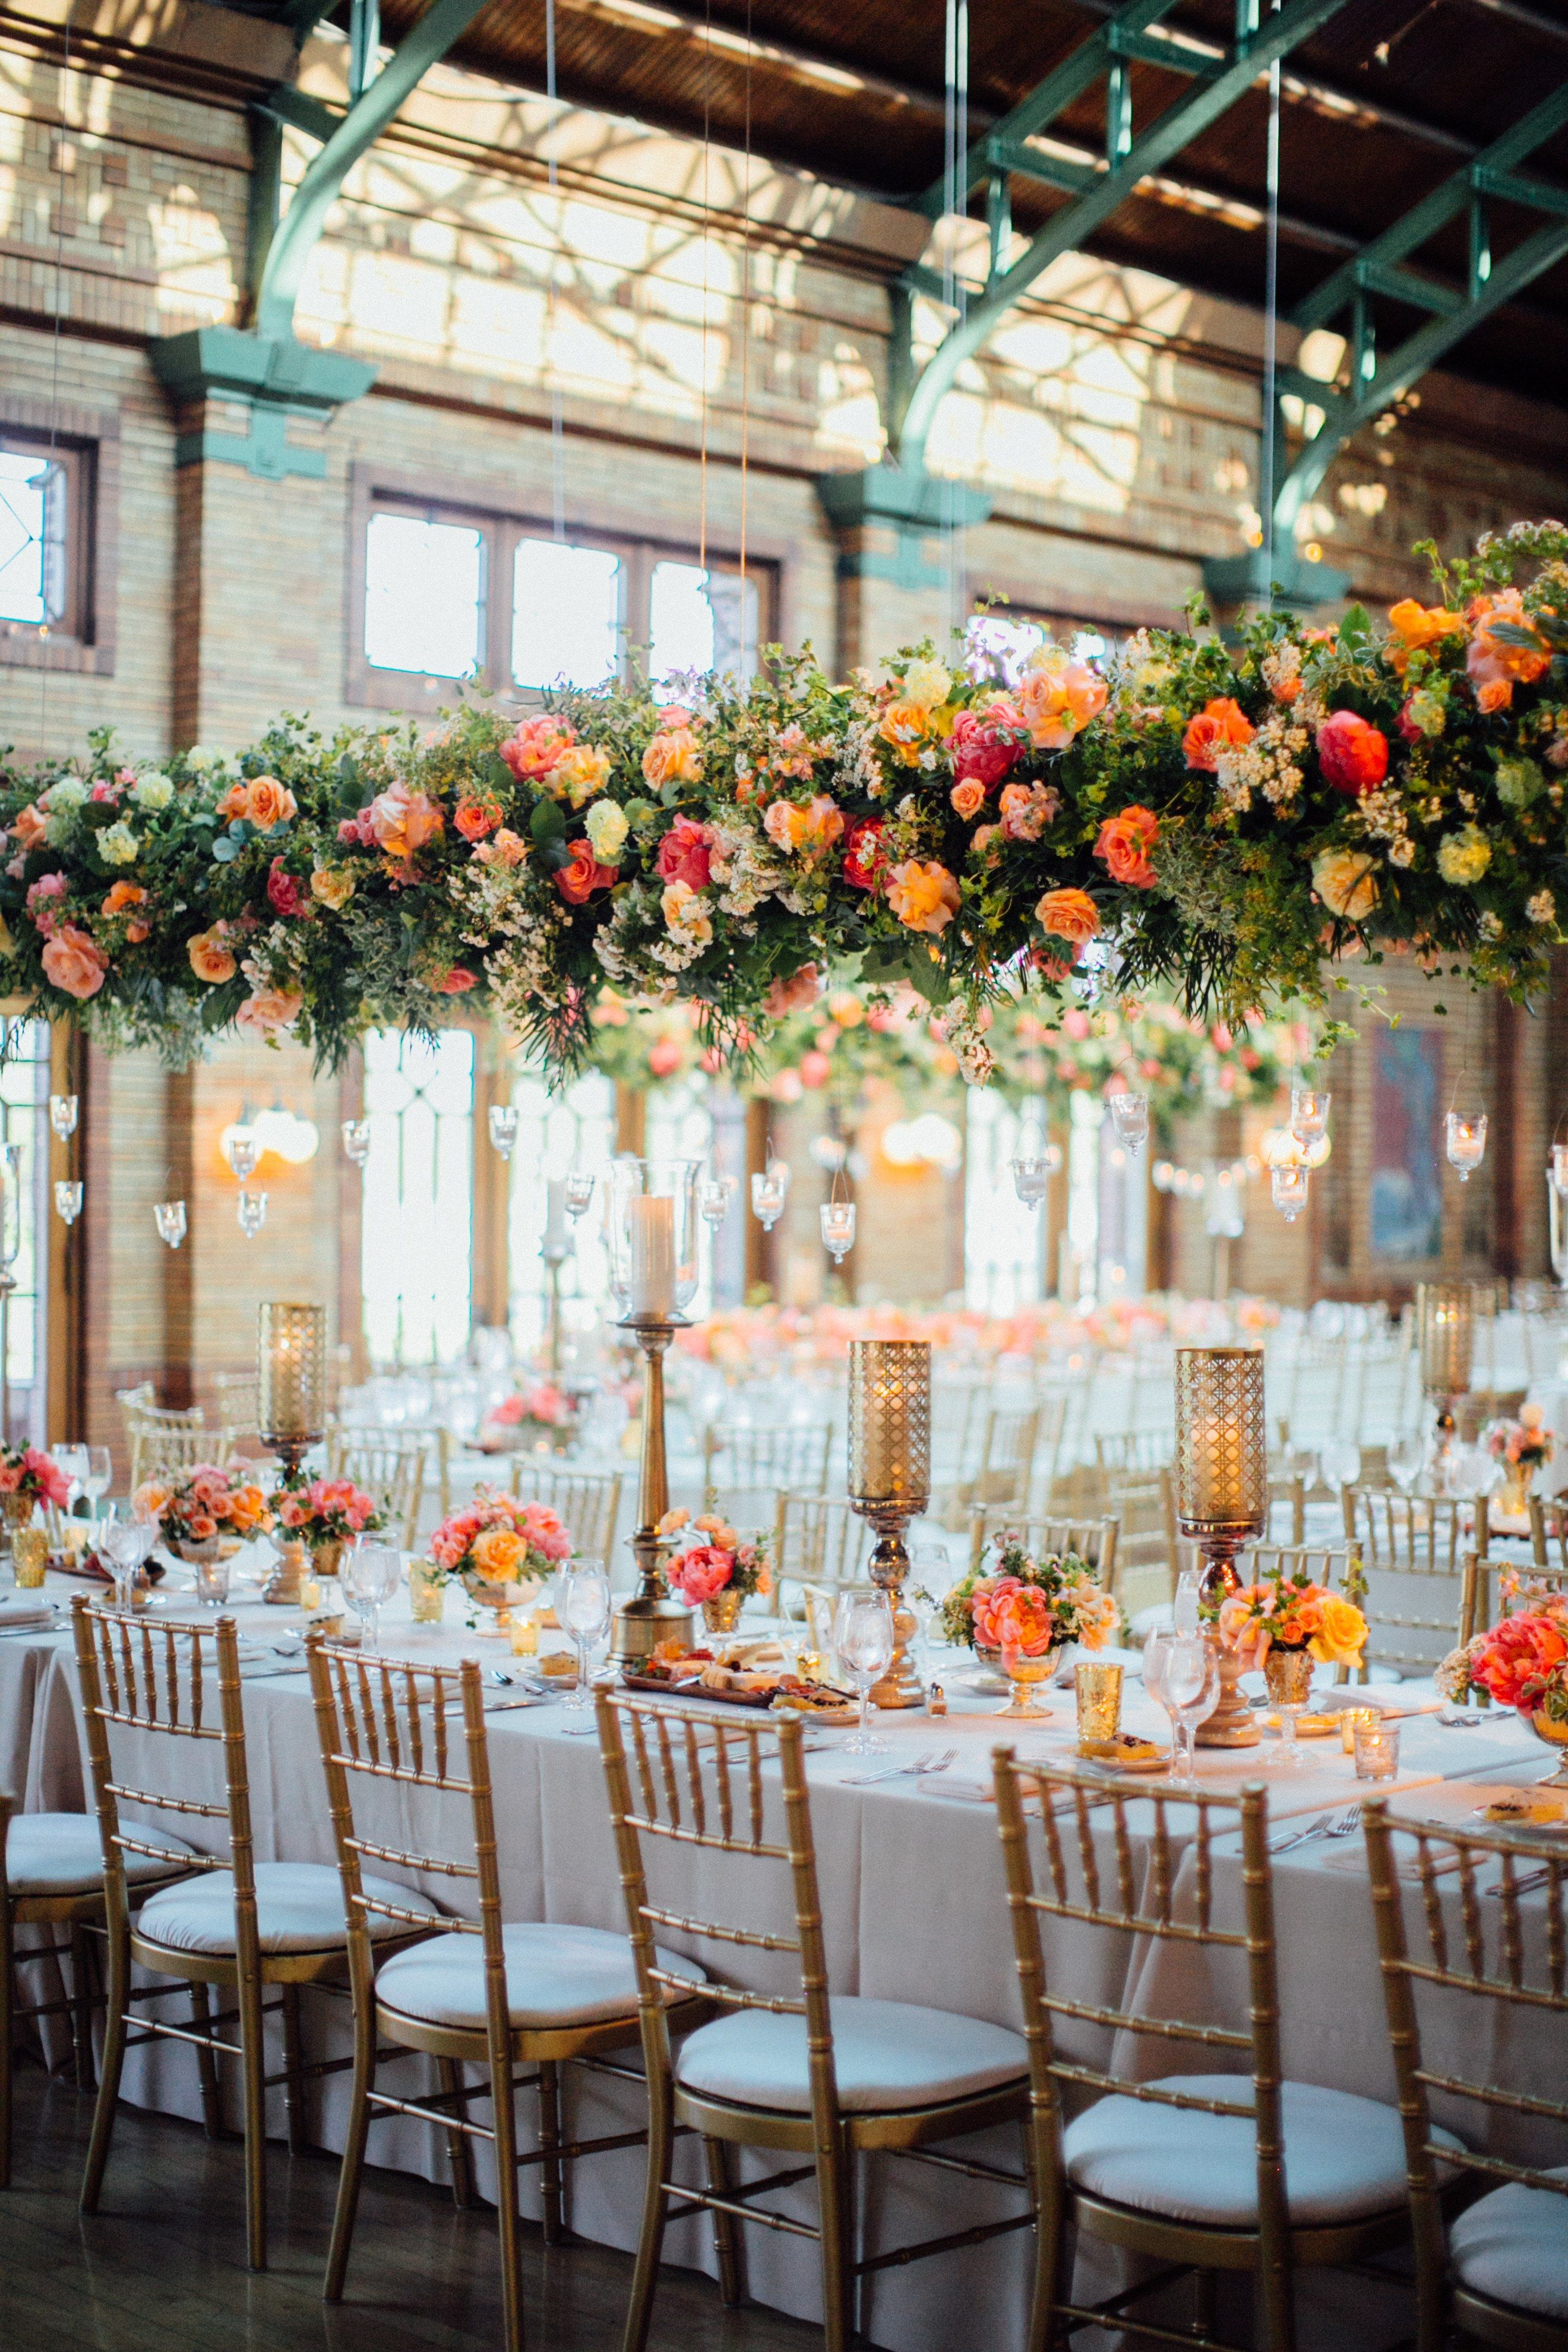 wedding receptions gold coast qld%0A Bright Colors and Whimsical Design Transformed This Iconic Chicago Venue